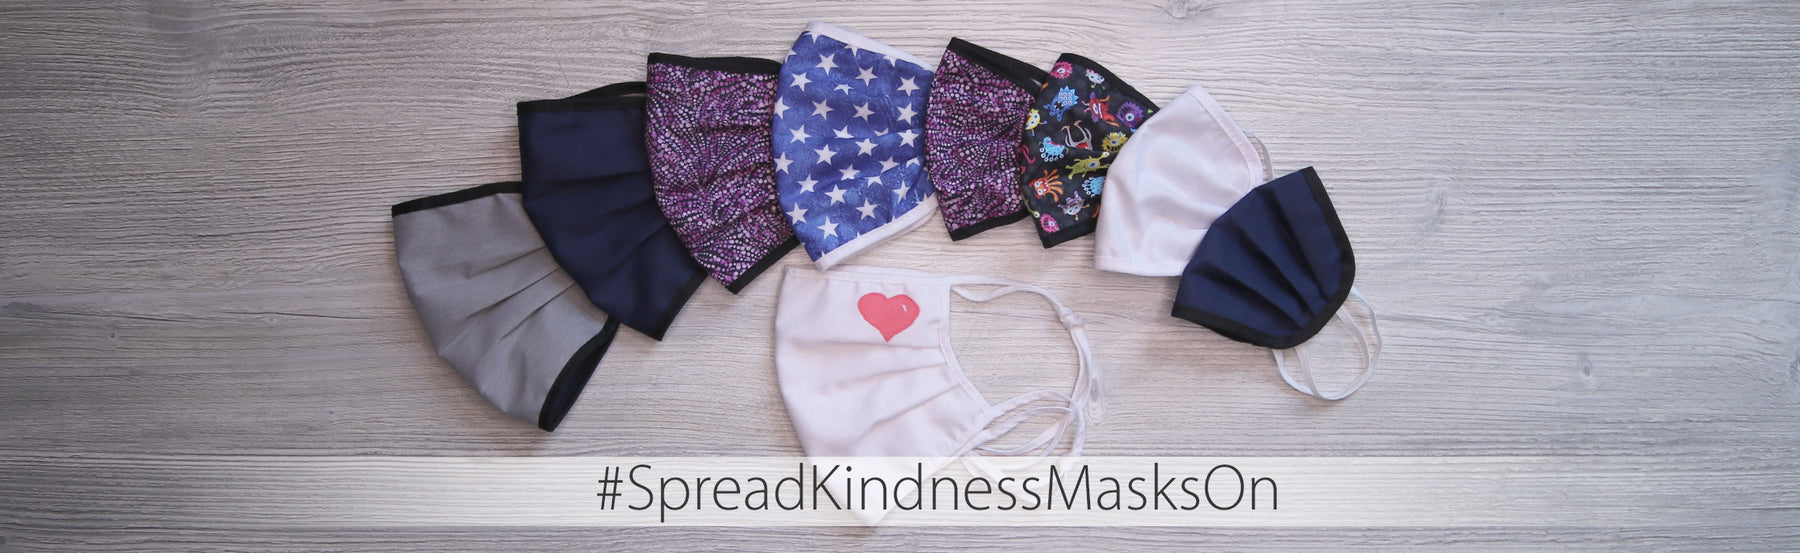 How We Talk About Masks Makes a Difference